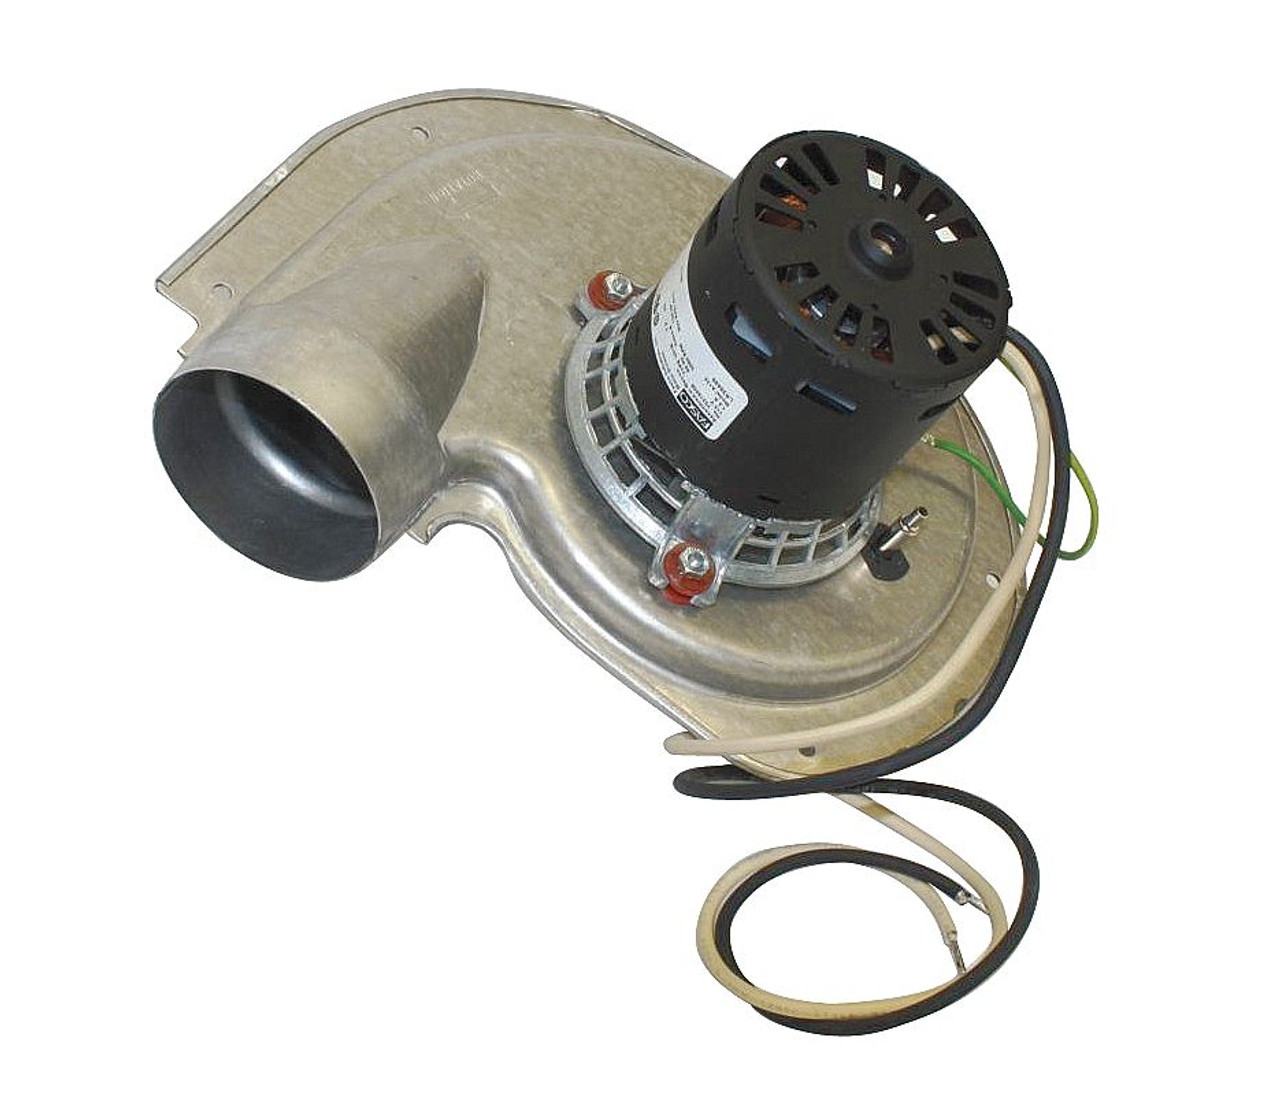 Heil Furnace Draft Inducer//Exhaust Vent Venter Motor 1010238 OEM Replacement